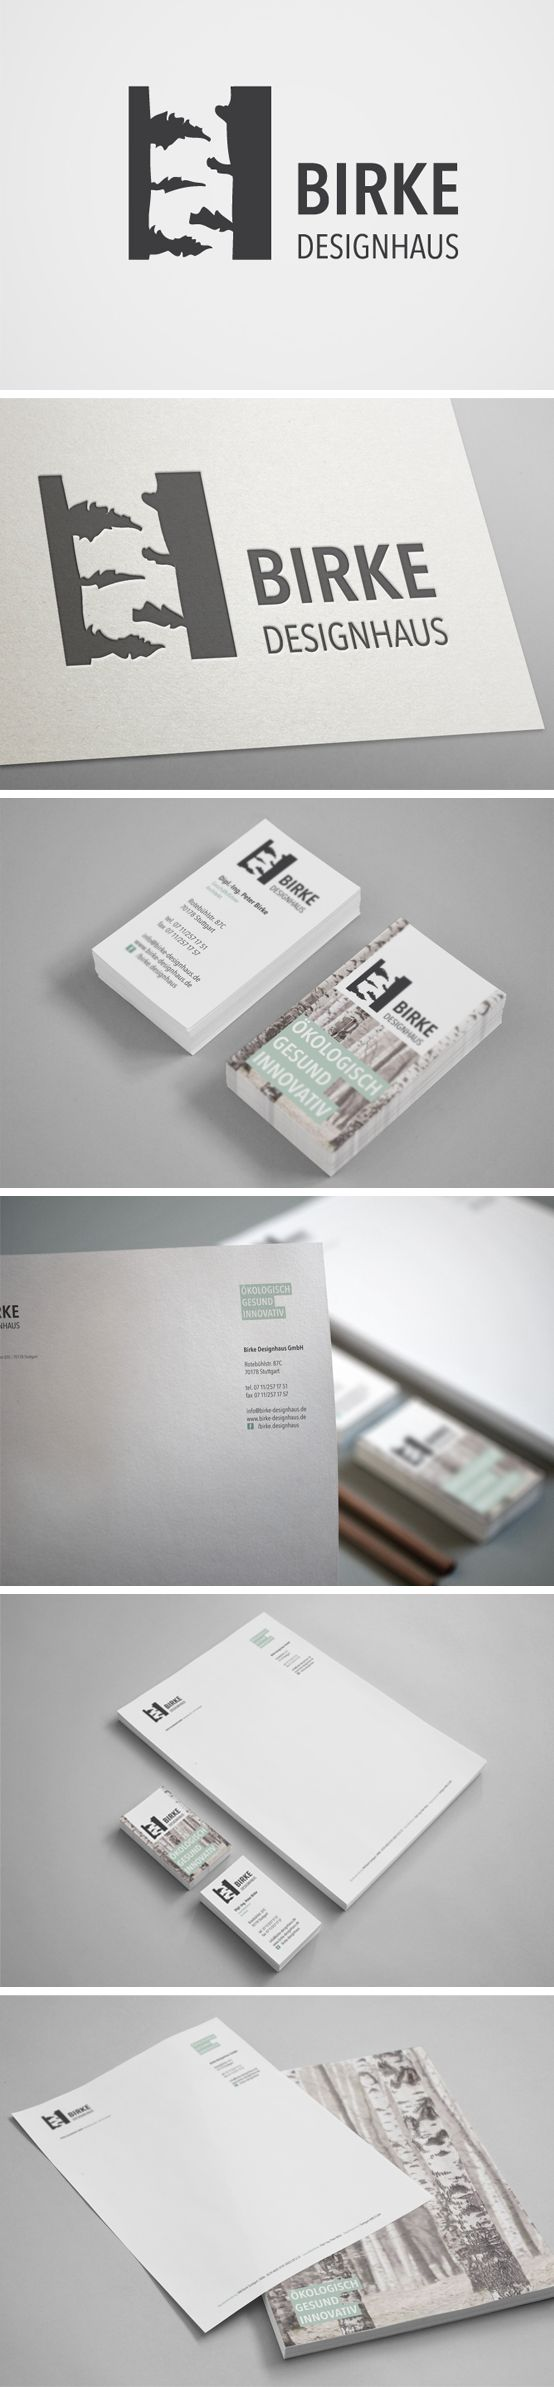 Corporate Design für Birke Designhaus | #stationary #corporate #design #corporatedesign #logo #identity #branding #letterhead #briefpapier #visitenkarte #business card #Germany | made with love in Stuttgart by www.smoco.de